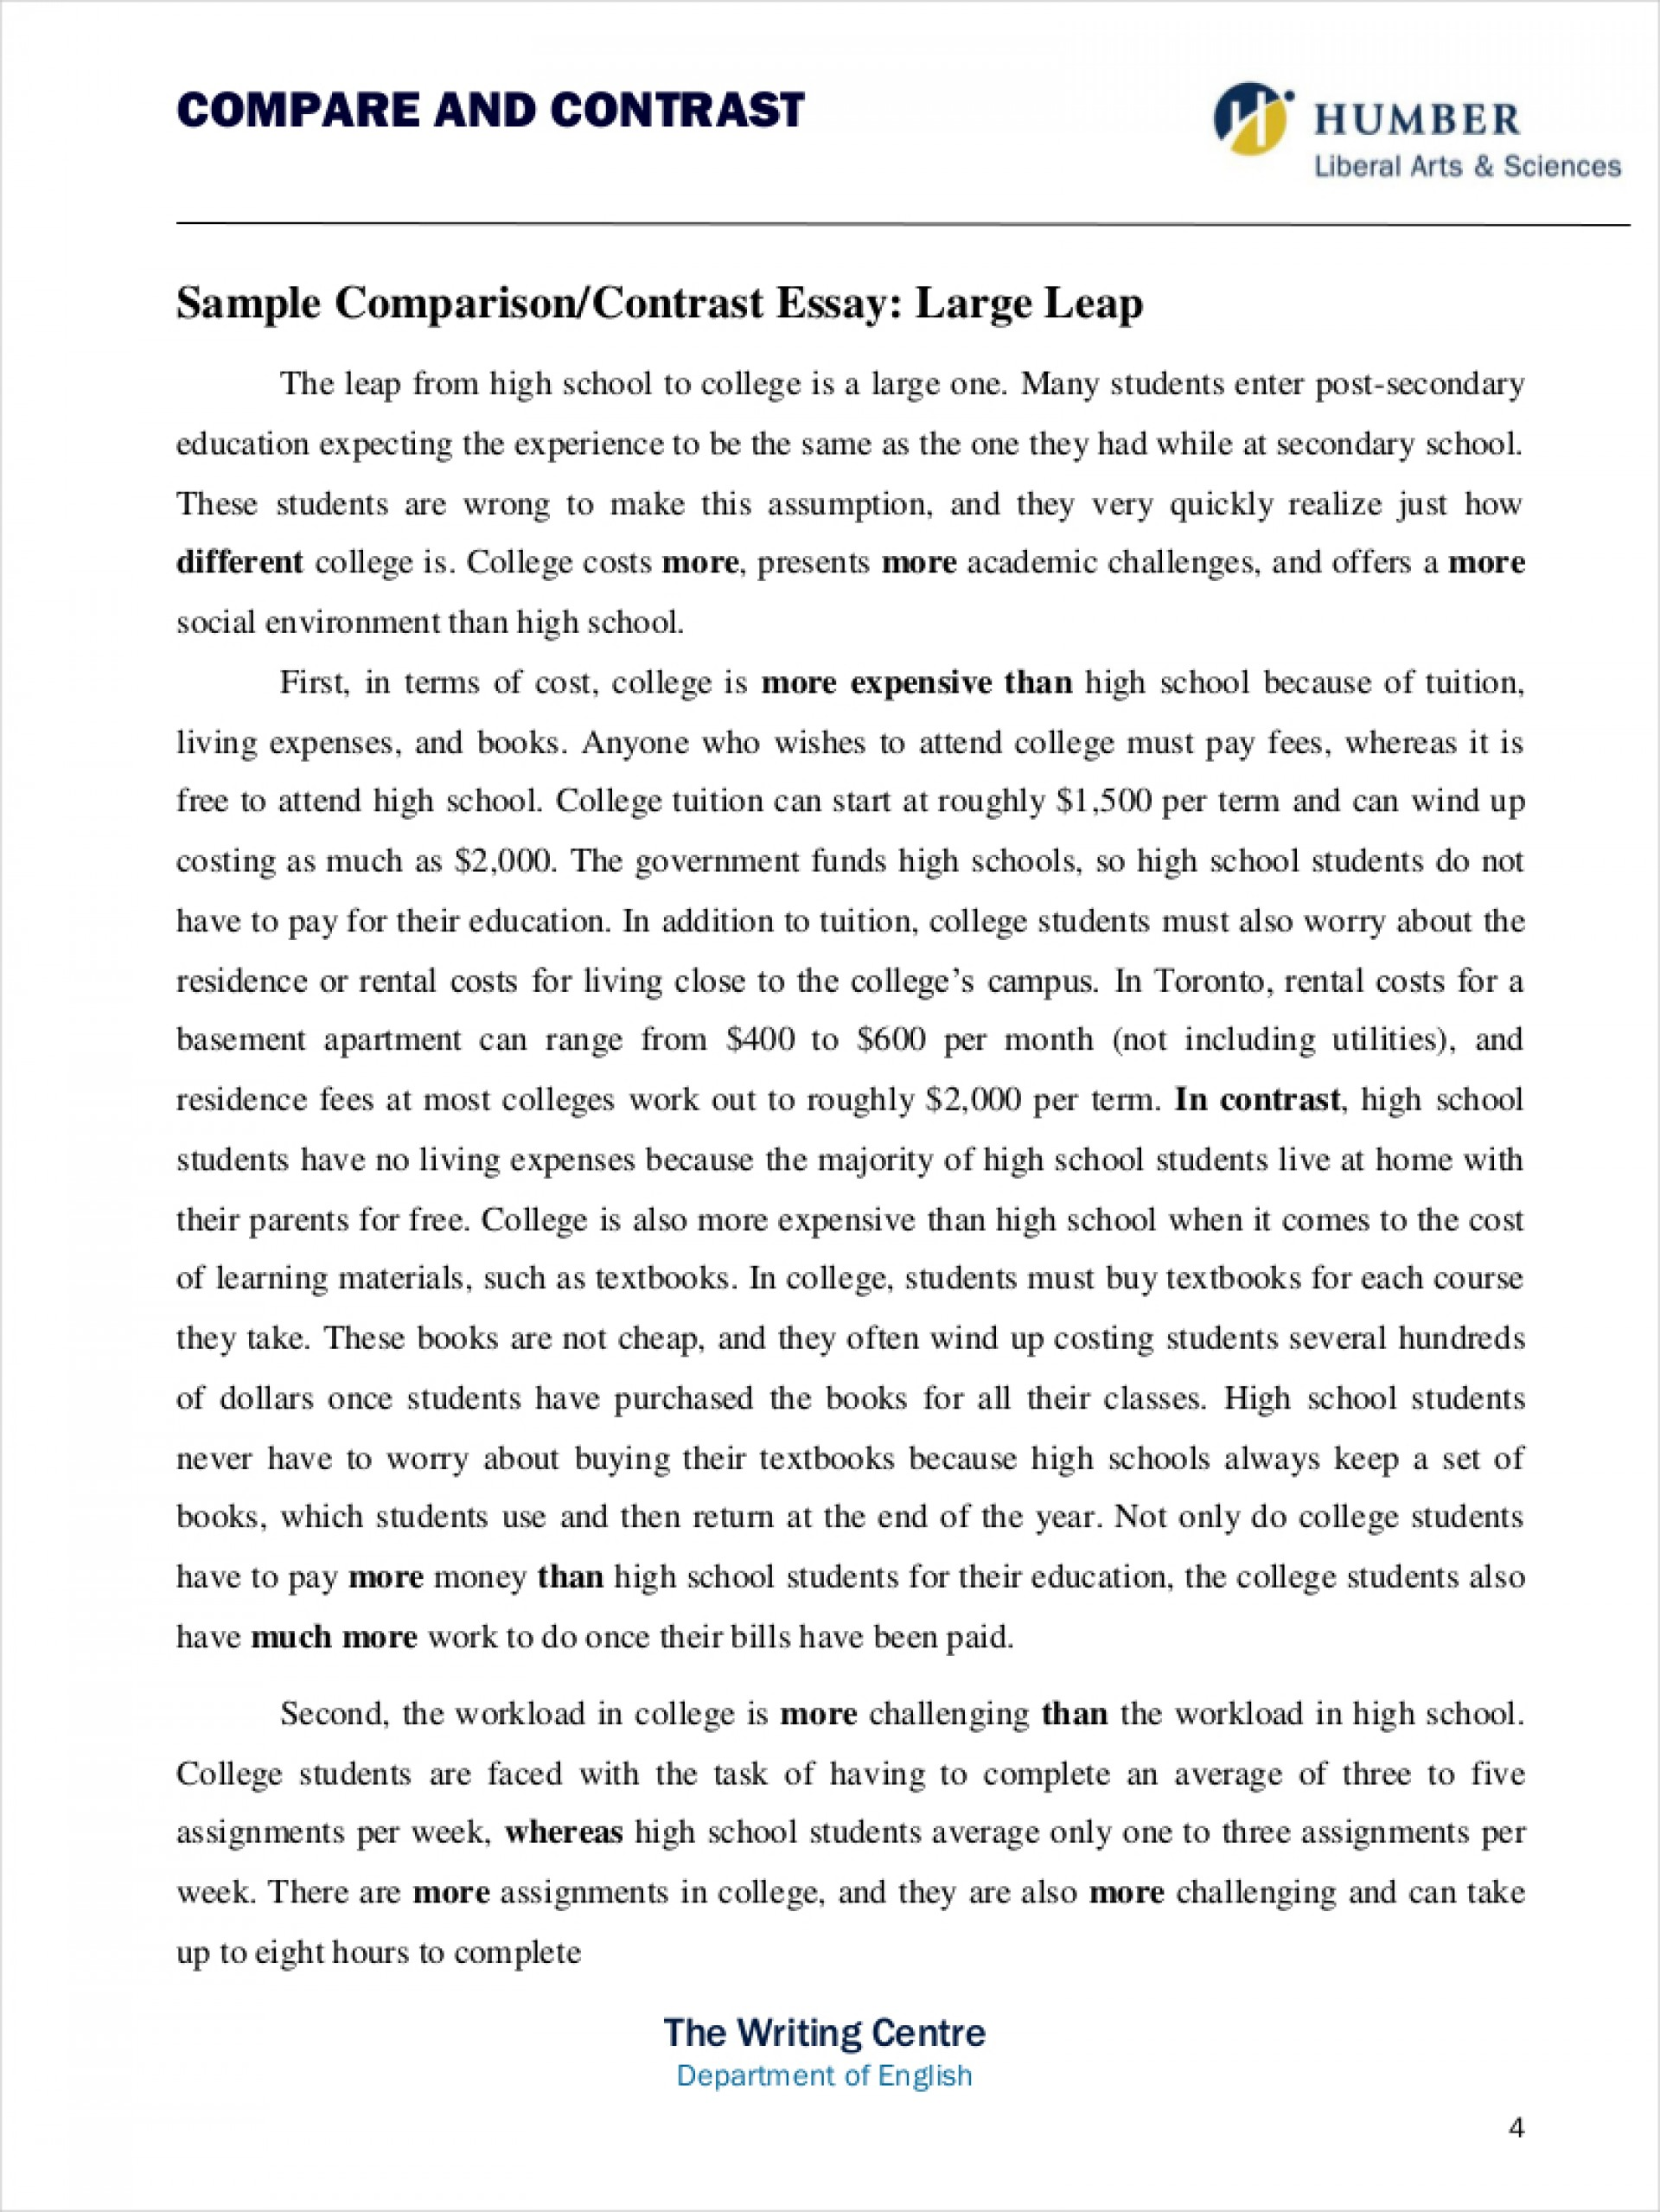 006 Compare And Contrast Essay Examples Comparative Samples Free Pdf Format Download Throughout Comparison Thesis Coles Thecolossus Co Within Ex 5th Grade 4th 6th 3rd Magnificent 9th For Elementary Students Topics 1920